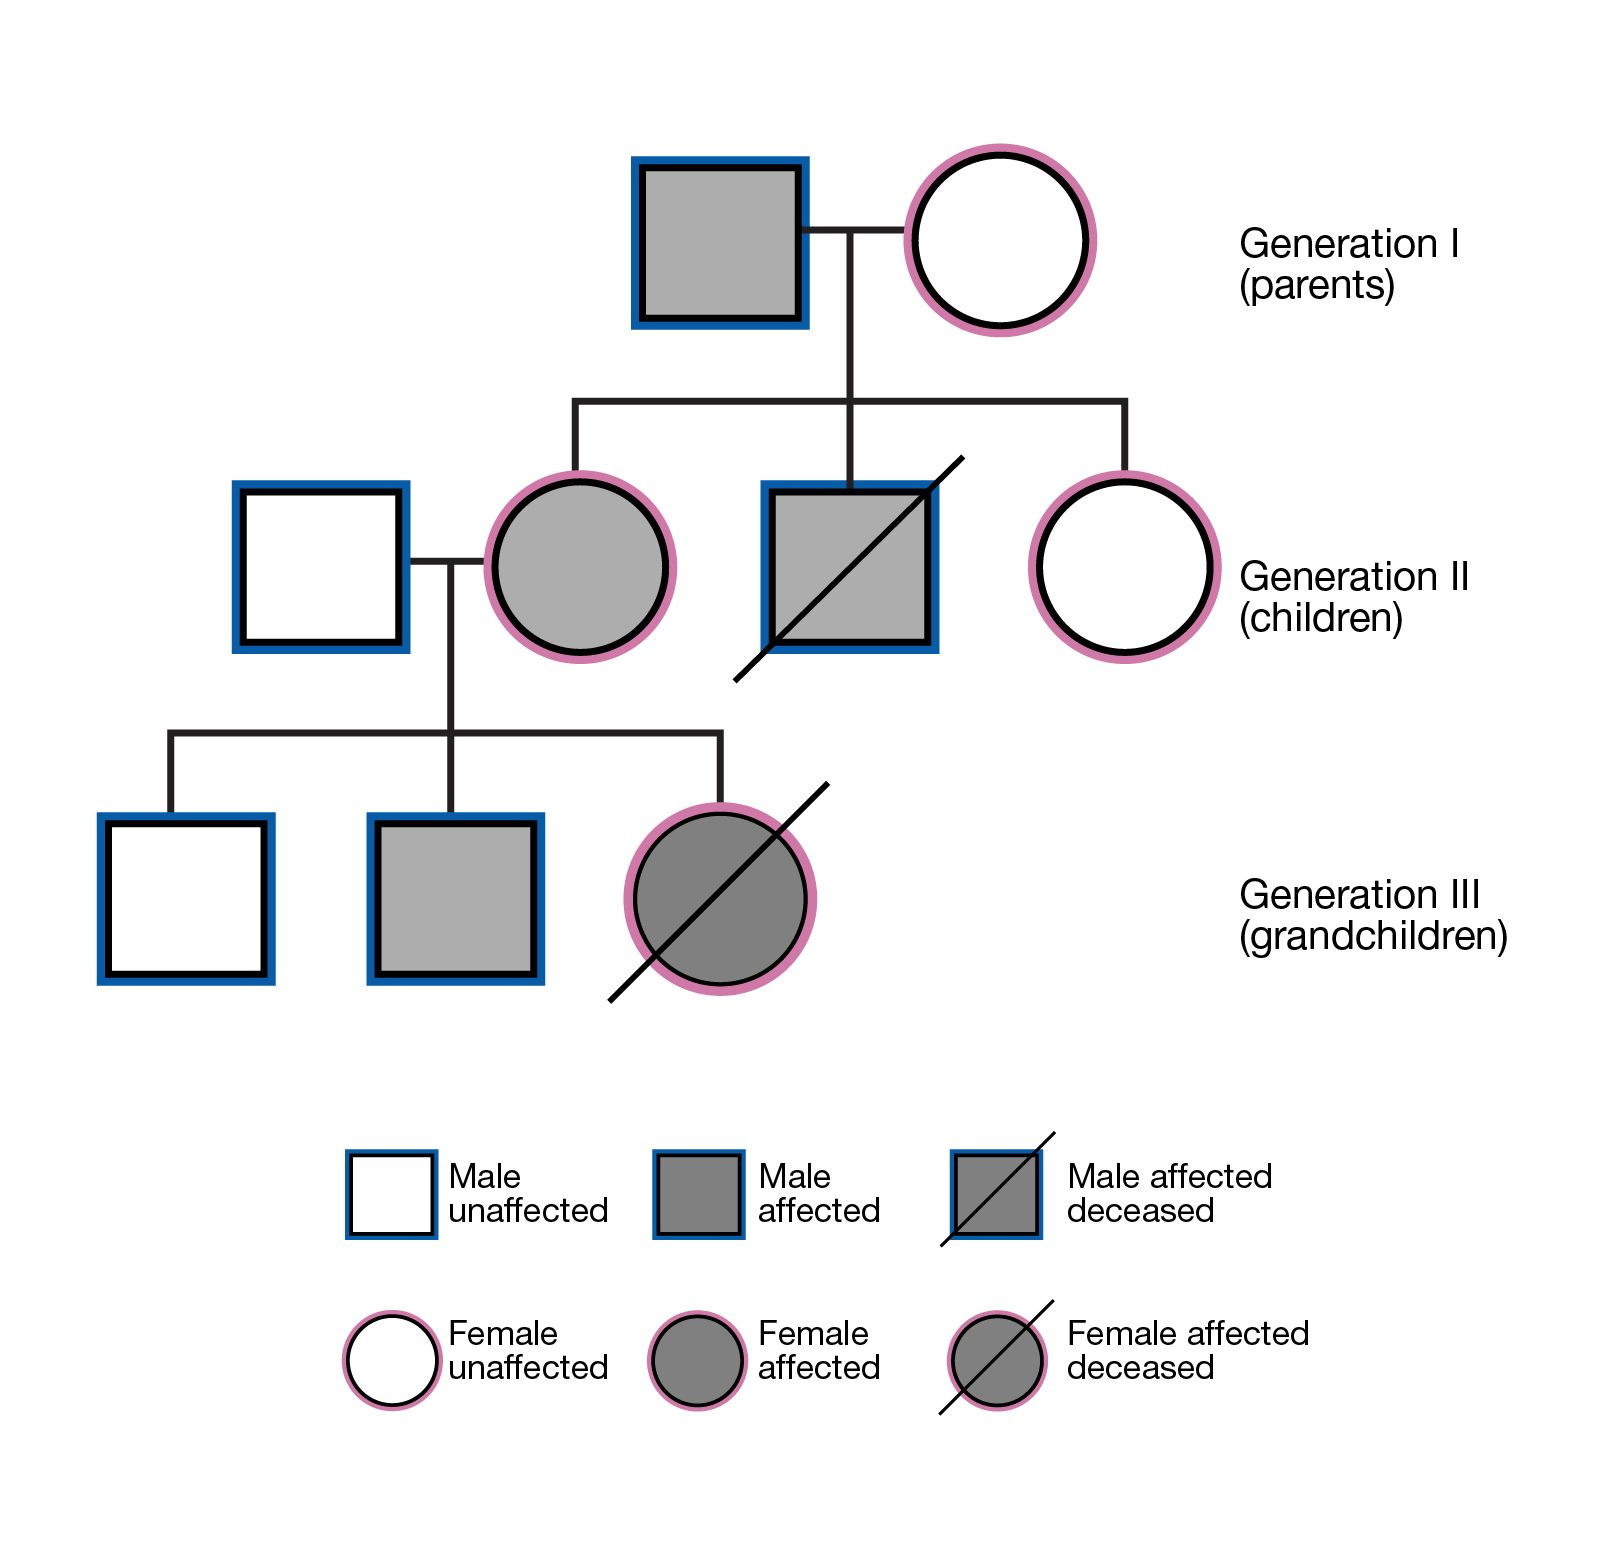 Caption: a family tree showing three generations that includes visual indications of related traits passed between each generation